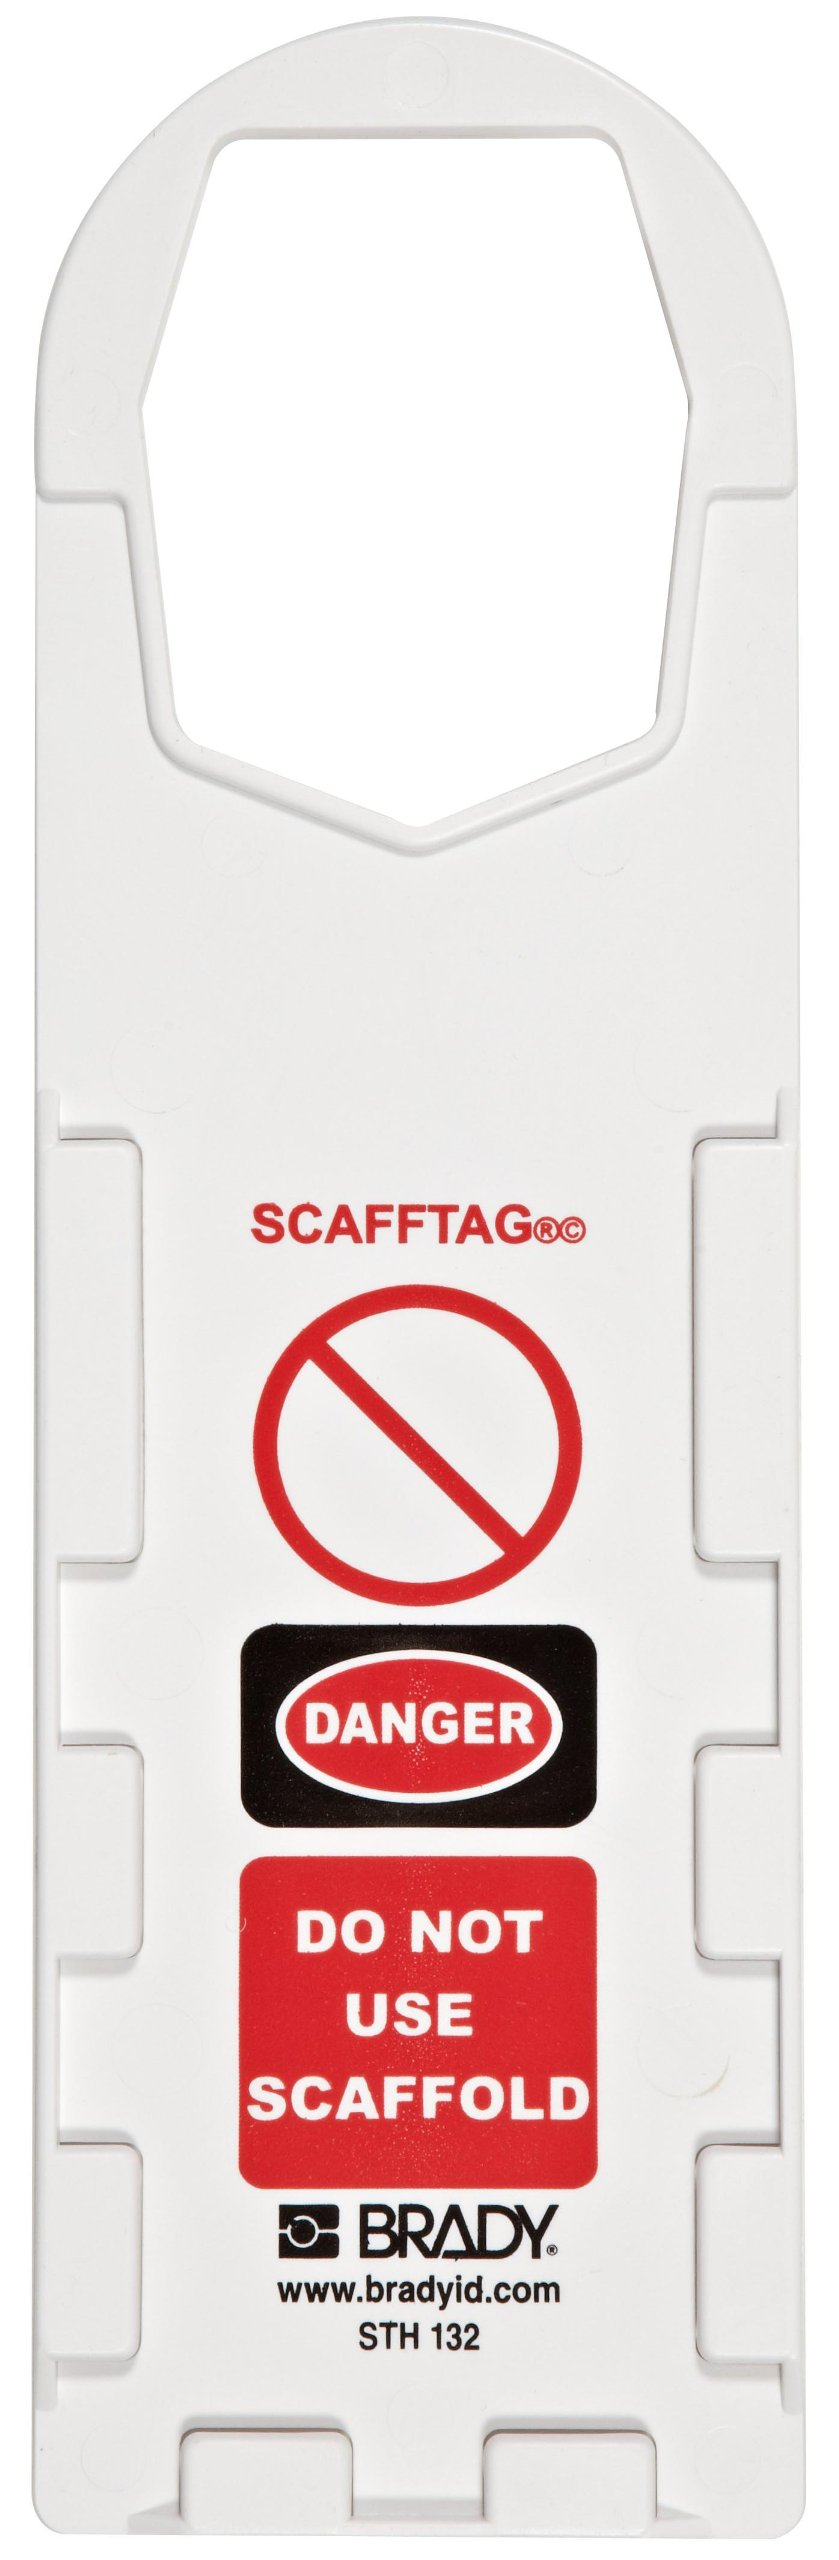 Brady SCAF-STH132 Plastic, 11-3/4'' Height, 3-1/2'' Width, White Color Scafftag Holders, Front Legend ''Danger, Do Not Use Scaffold'' (Pack Of 10)